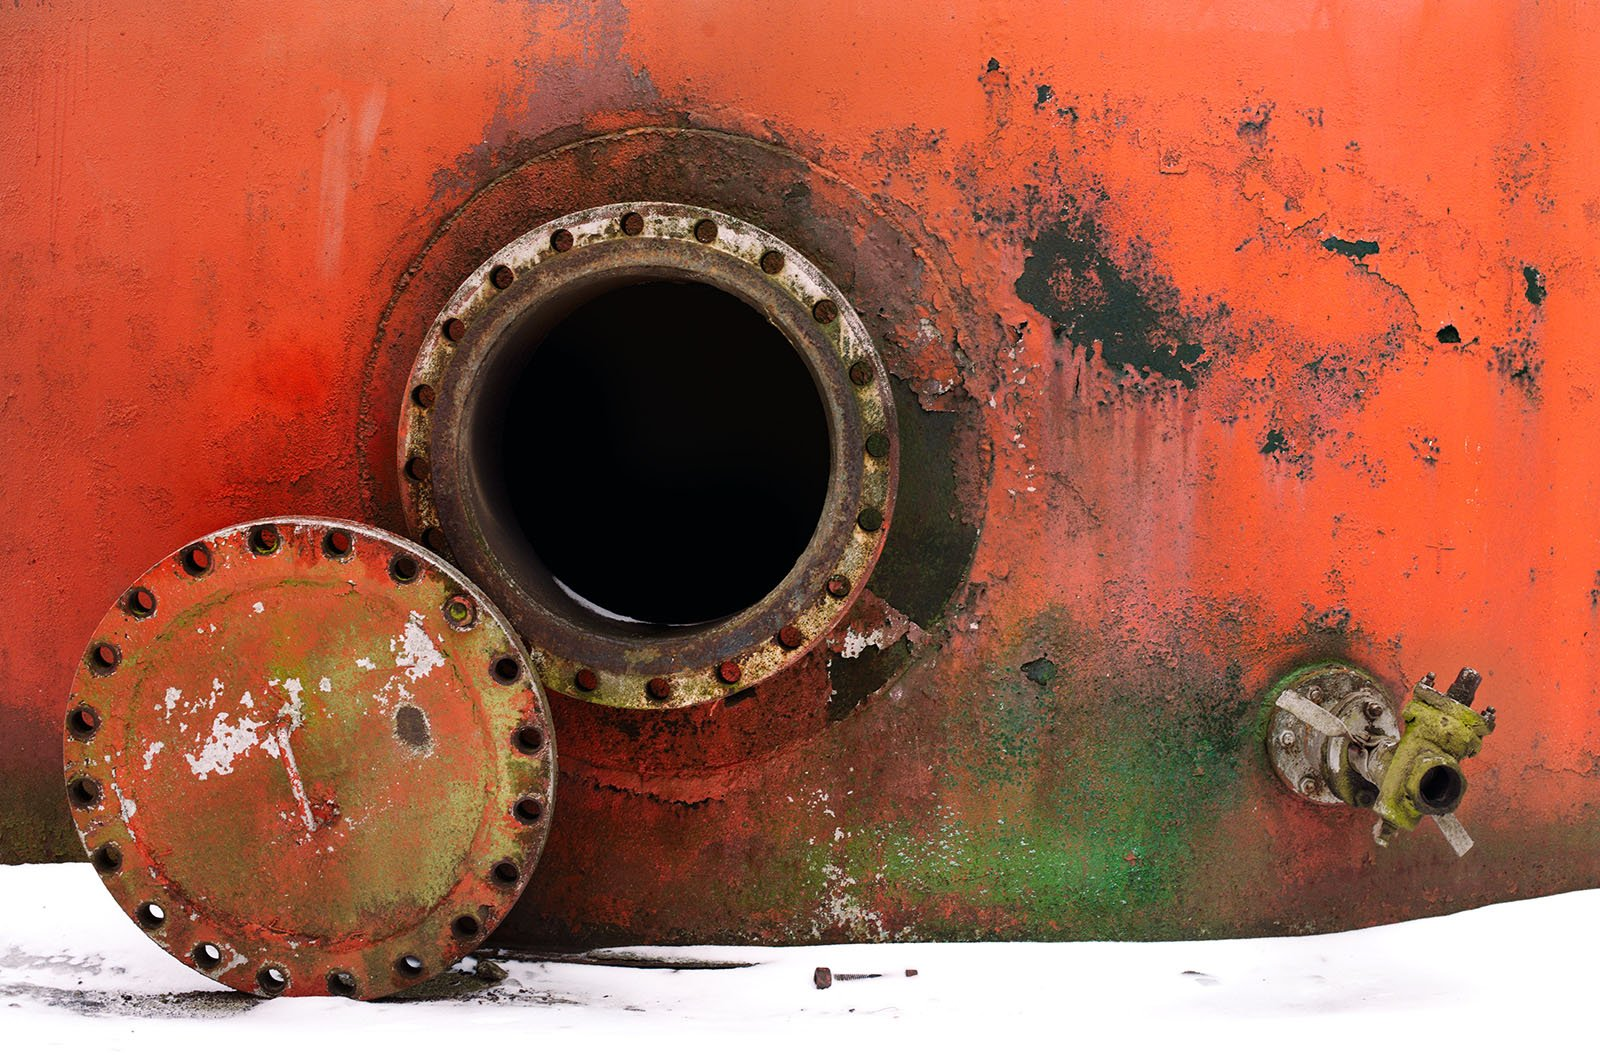 Confined spaces inspection in industrial assets: is drone a solution?